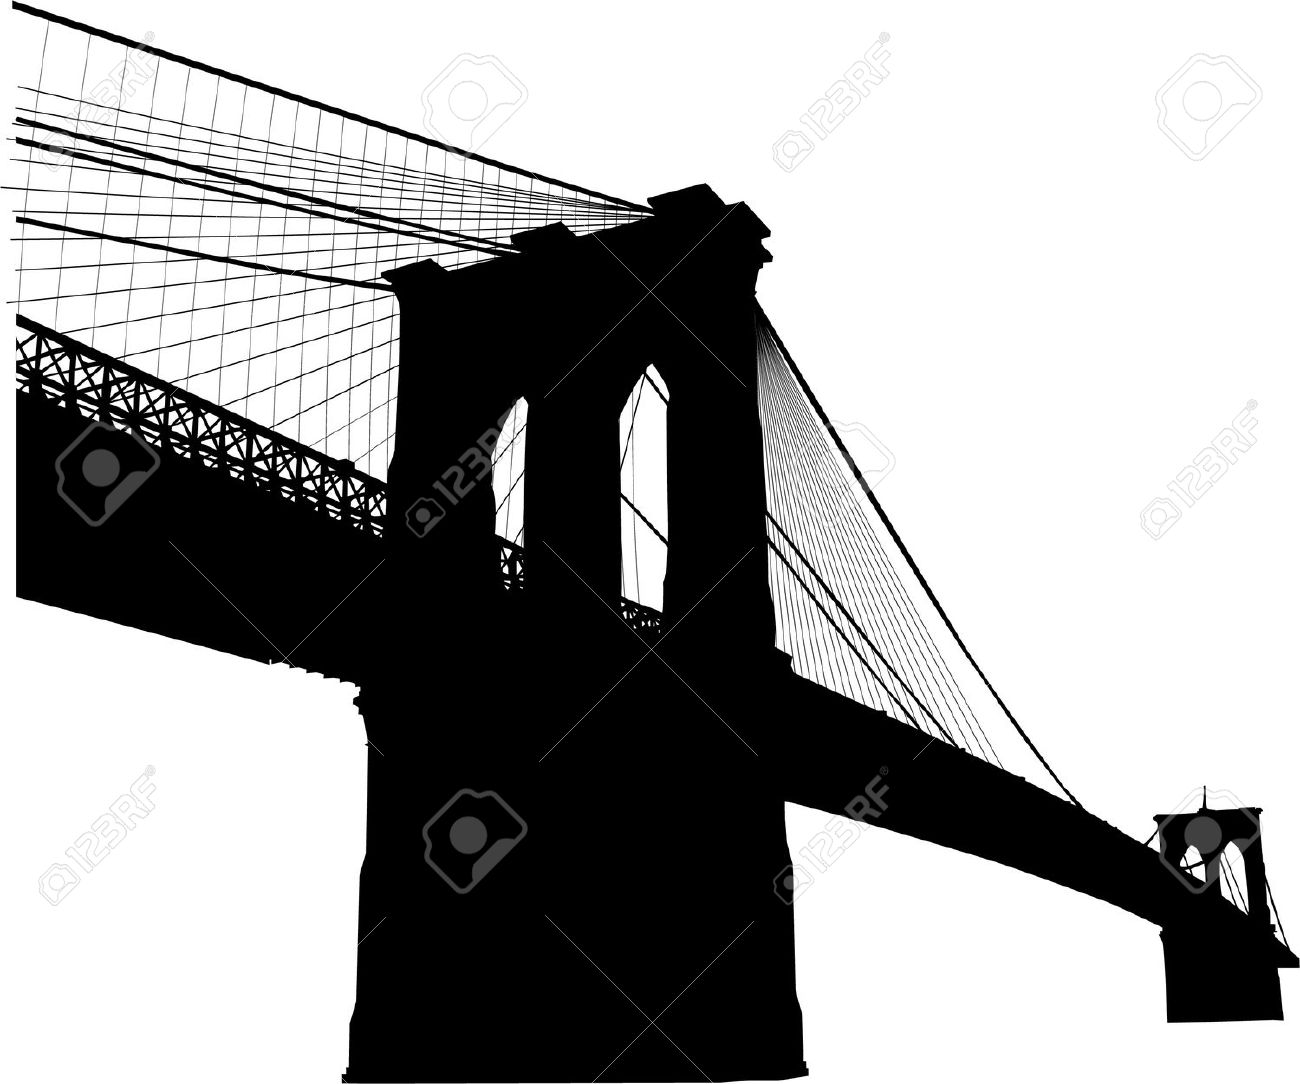 Manhattan bridge clipart #1